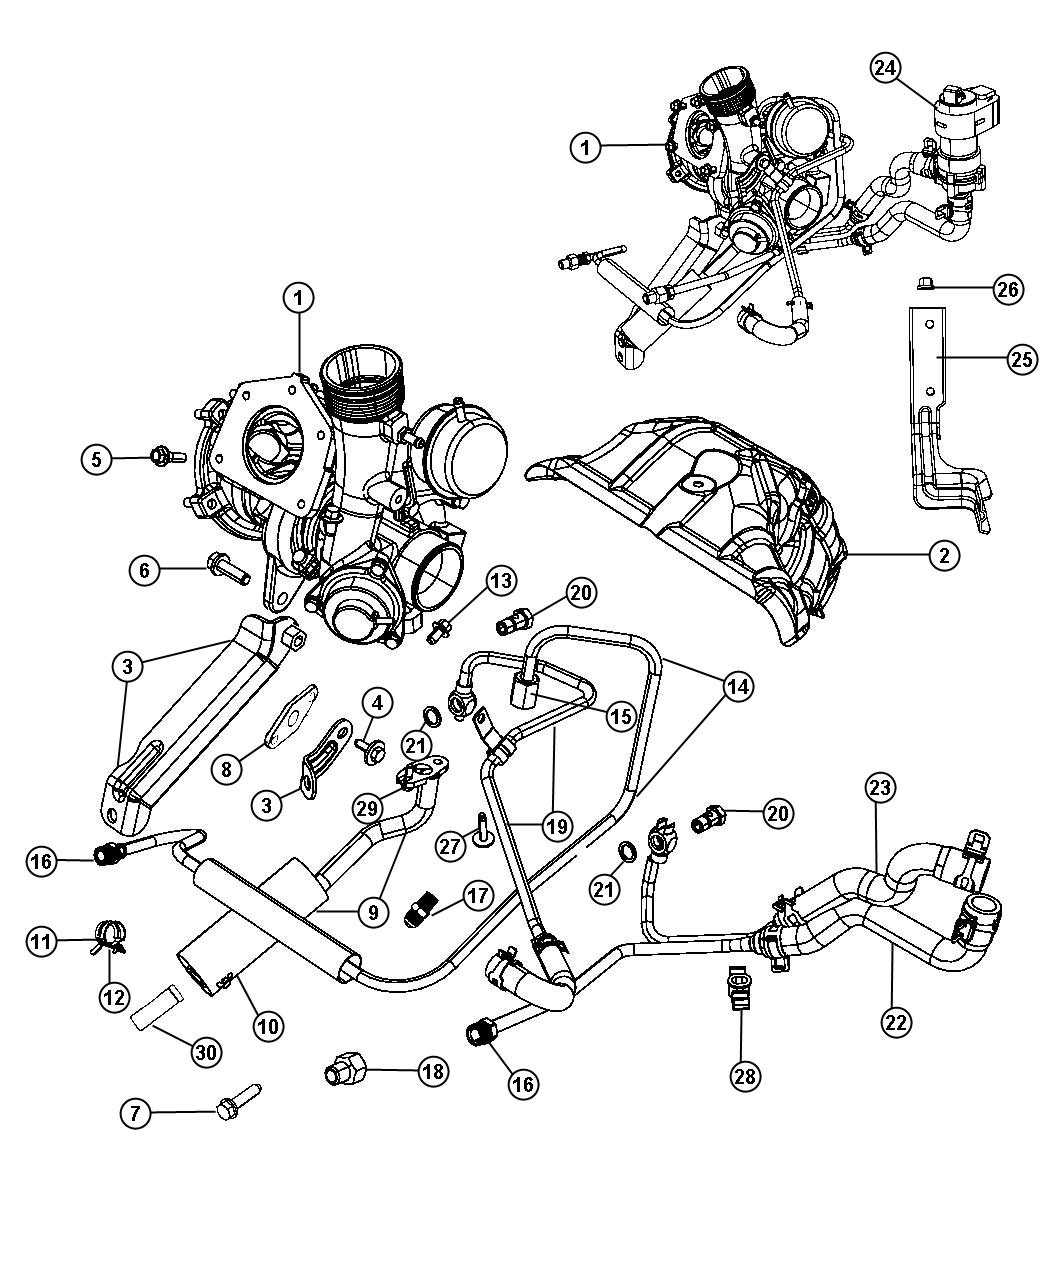 Dodge Caliber Parts Diagram